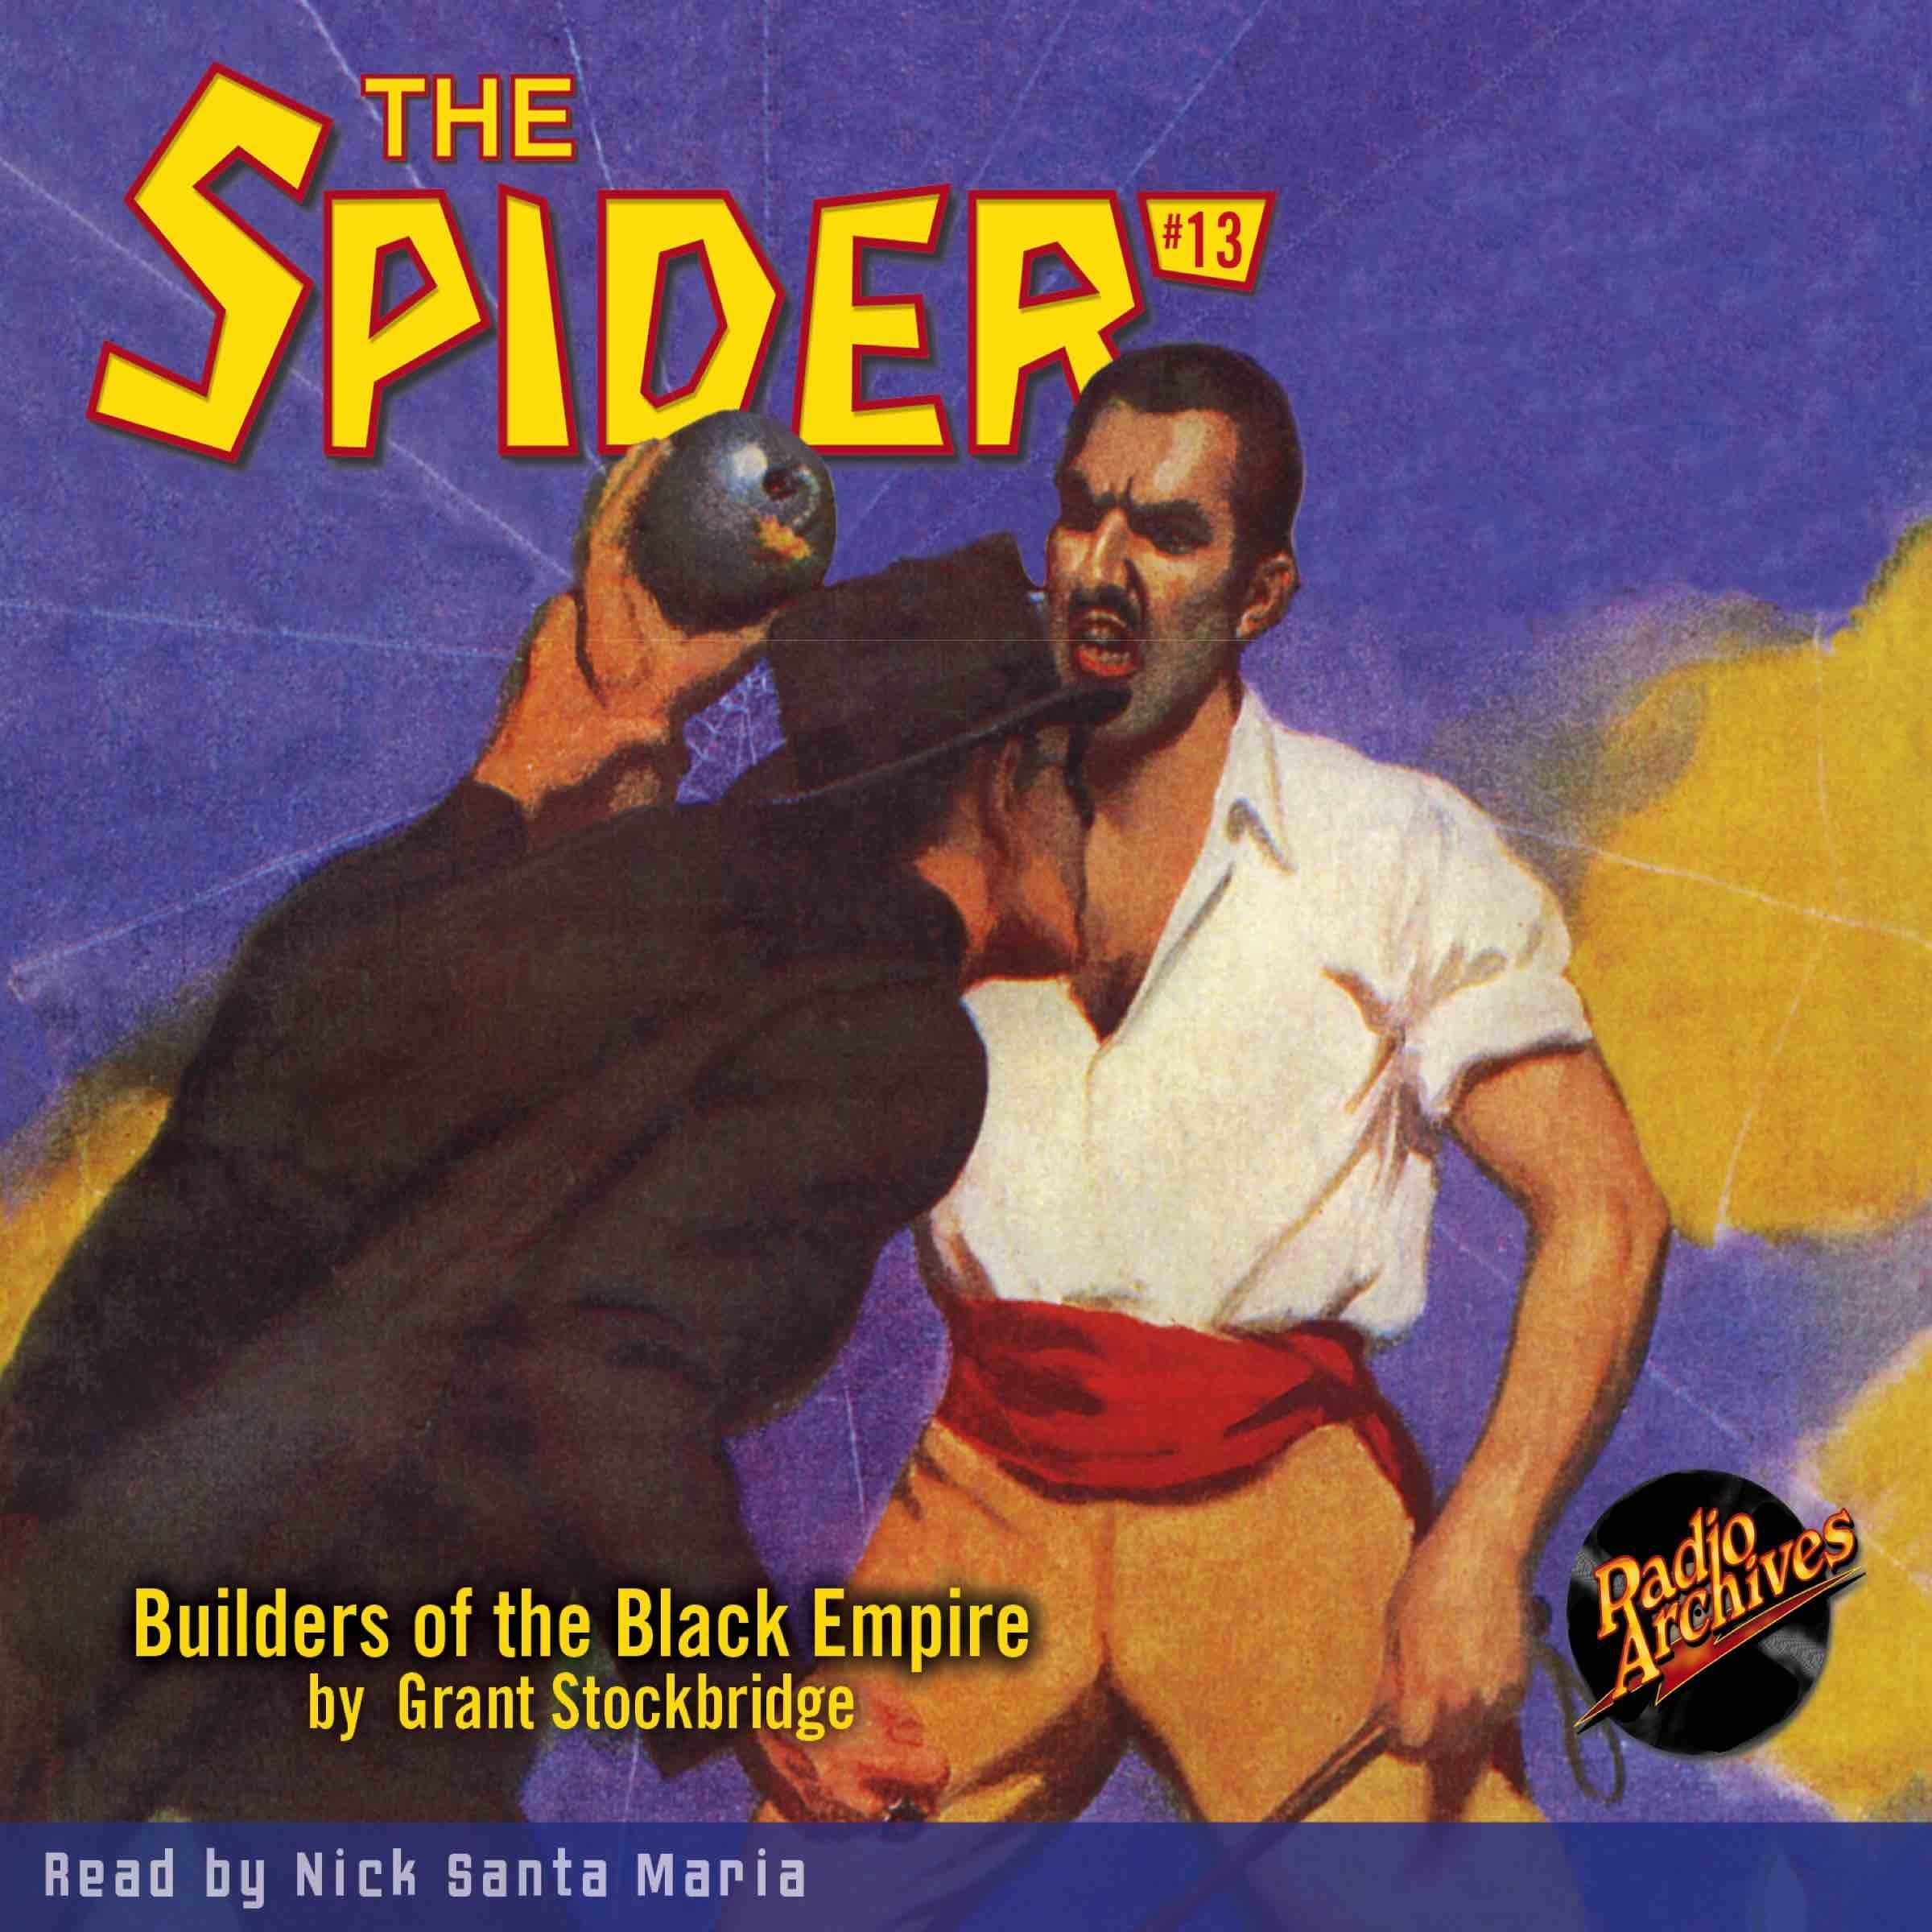 Printable Spider #13, The: Builders of the Black Empire Audiobook Cover Art